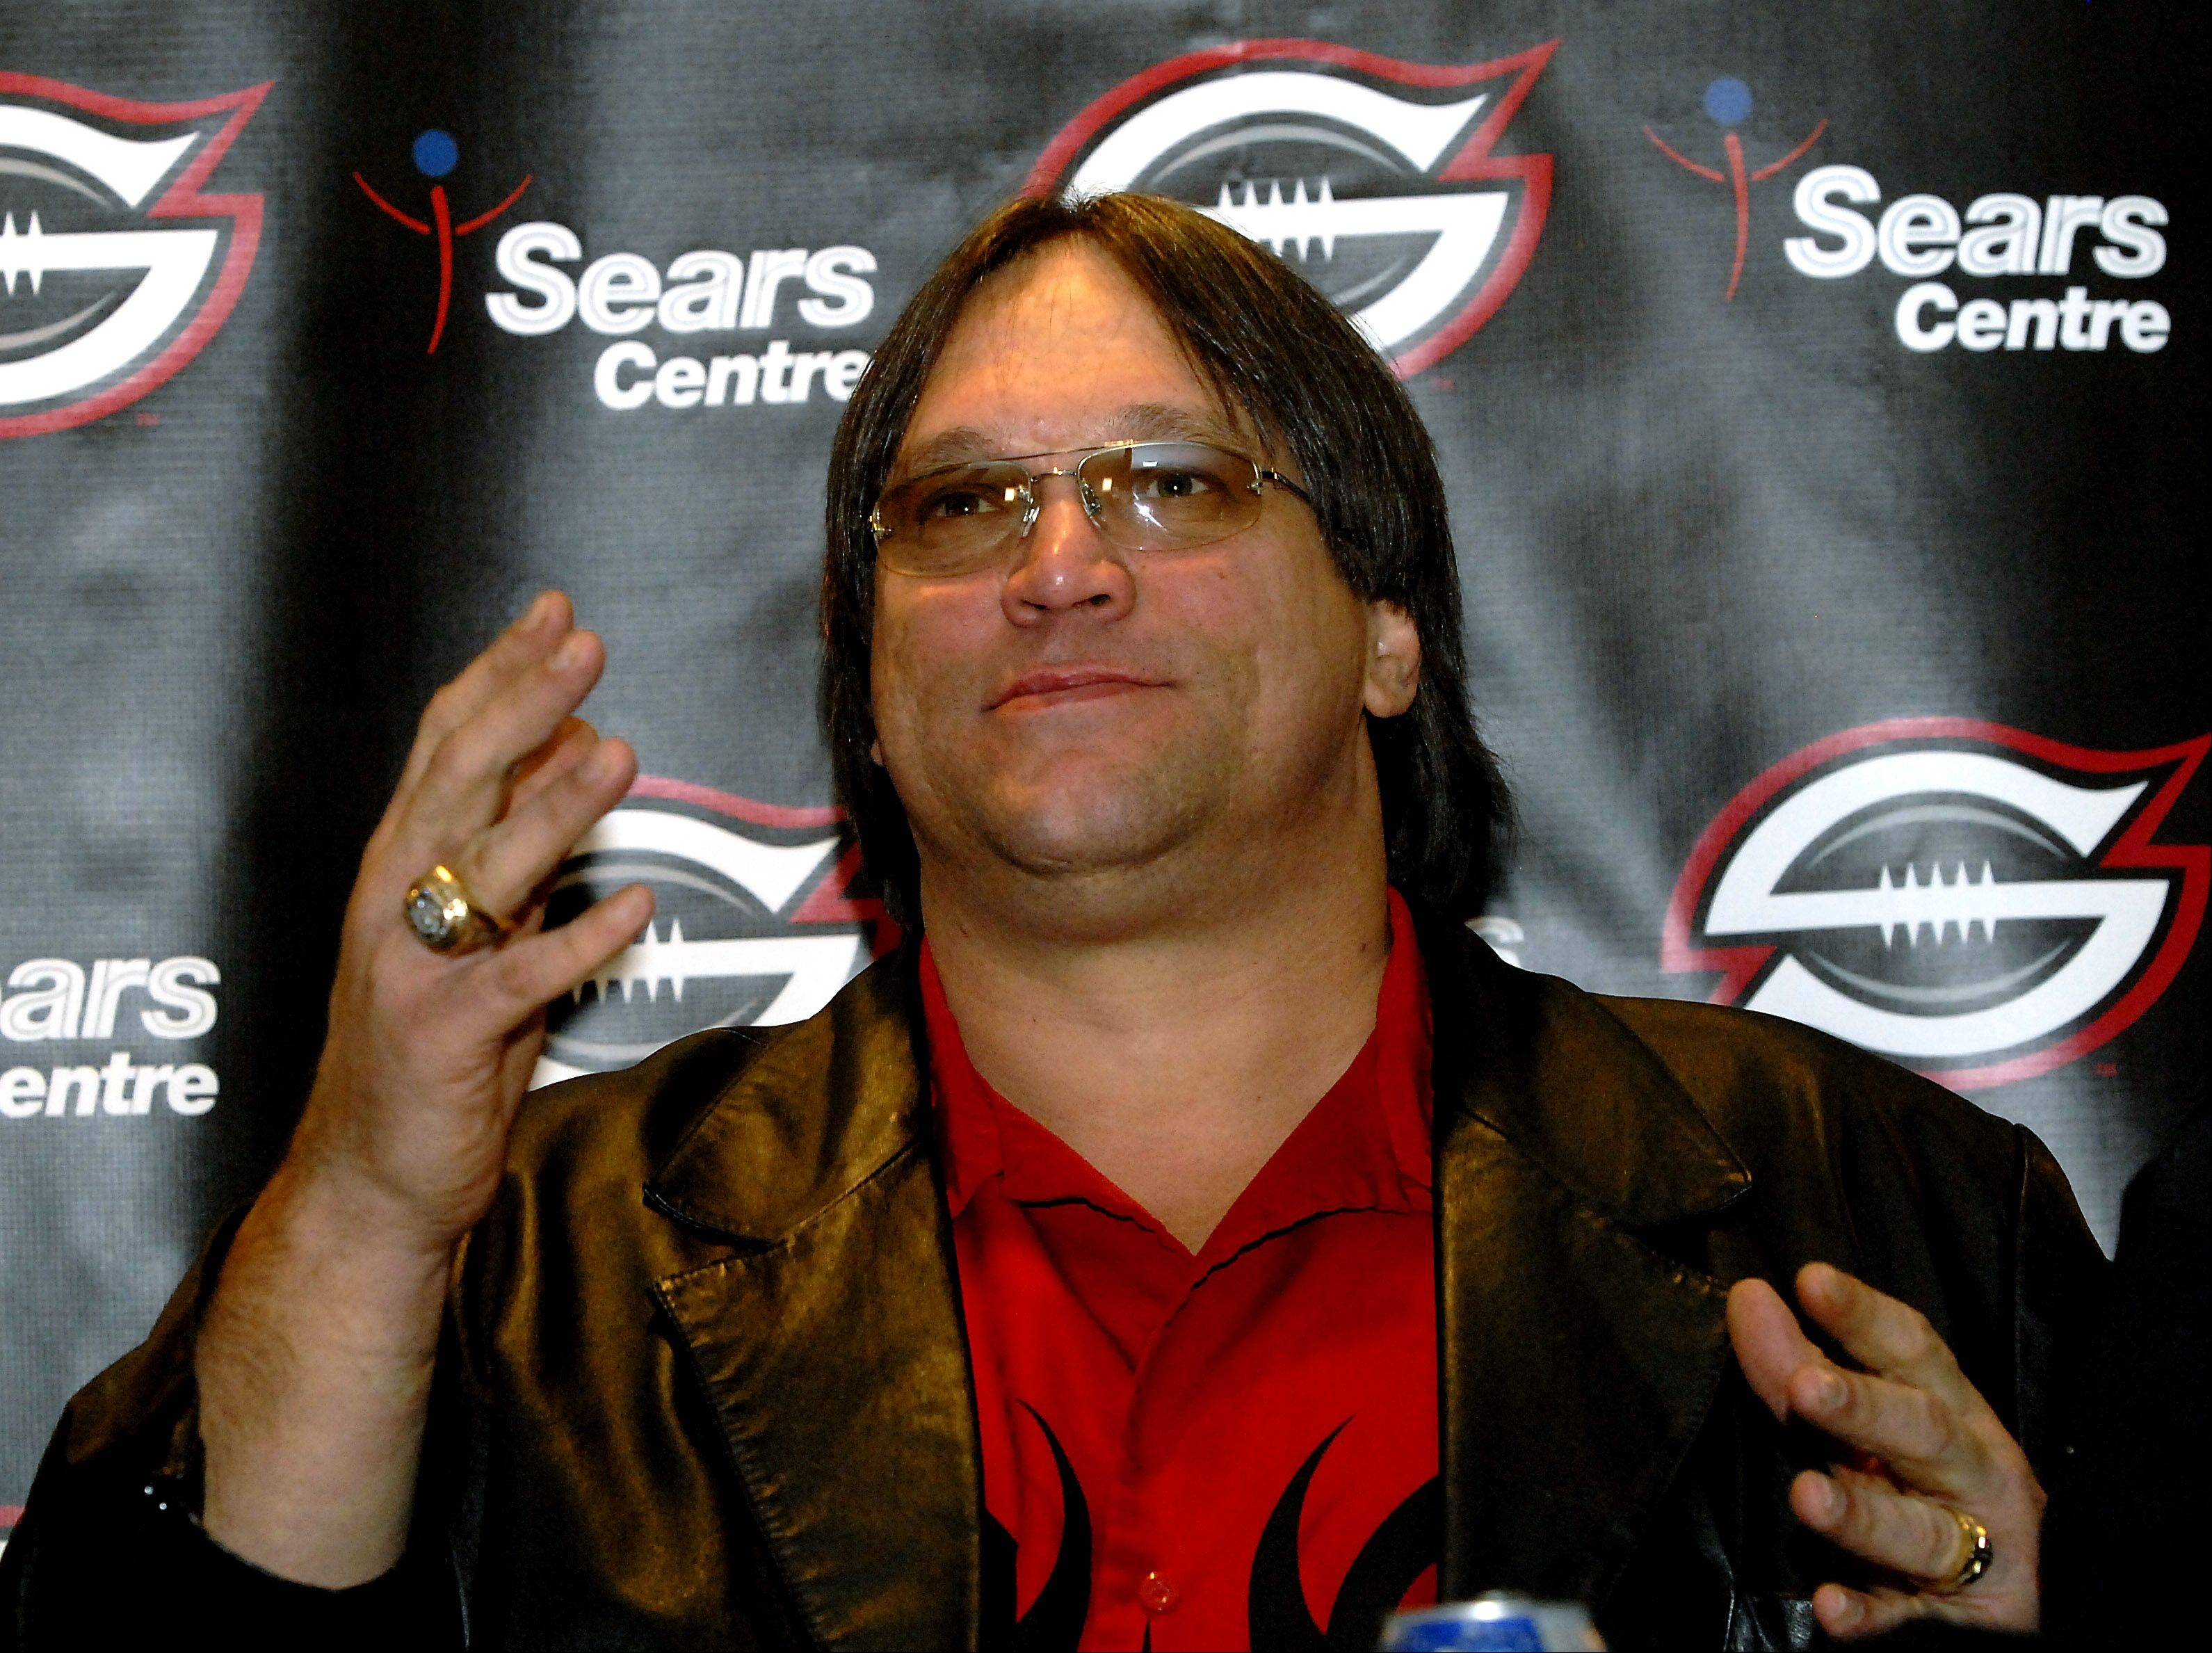 Former Chicago Bears defensive lineman Steve McMichael said he plans to run for mayor of Romeoville.